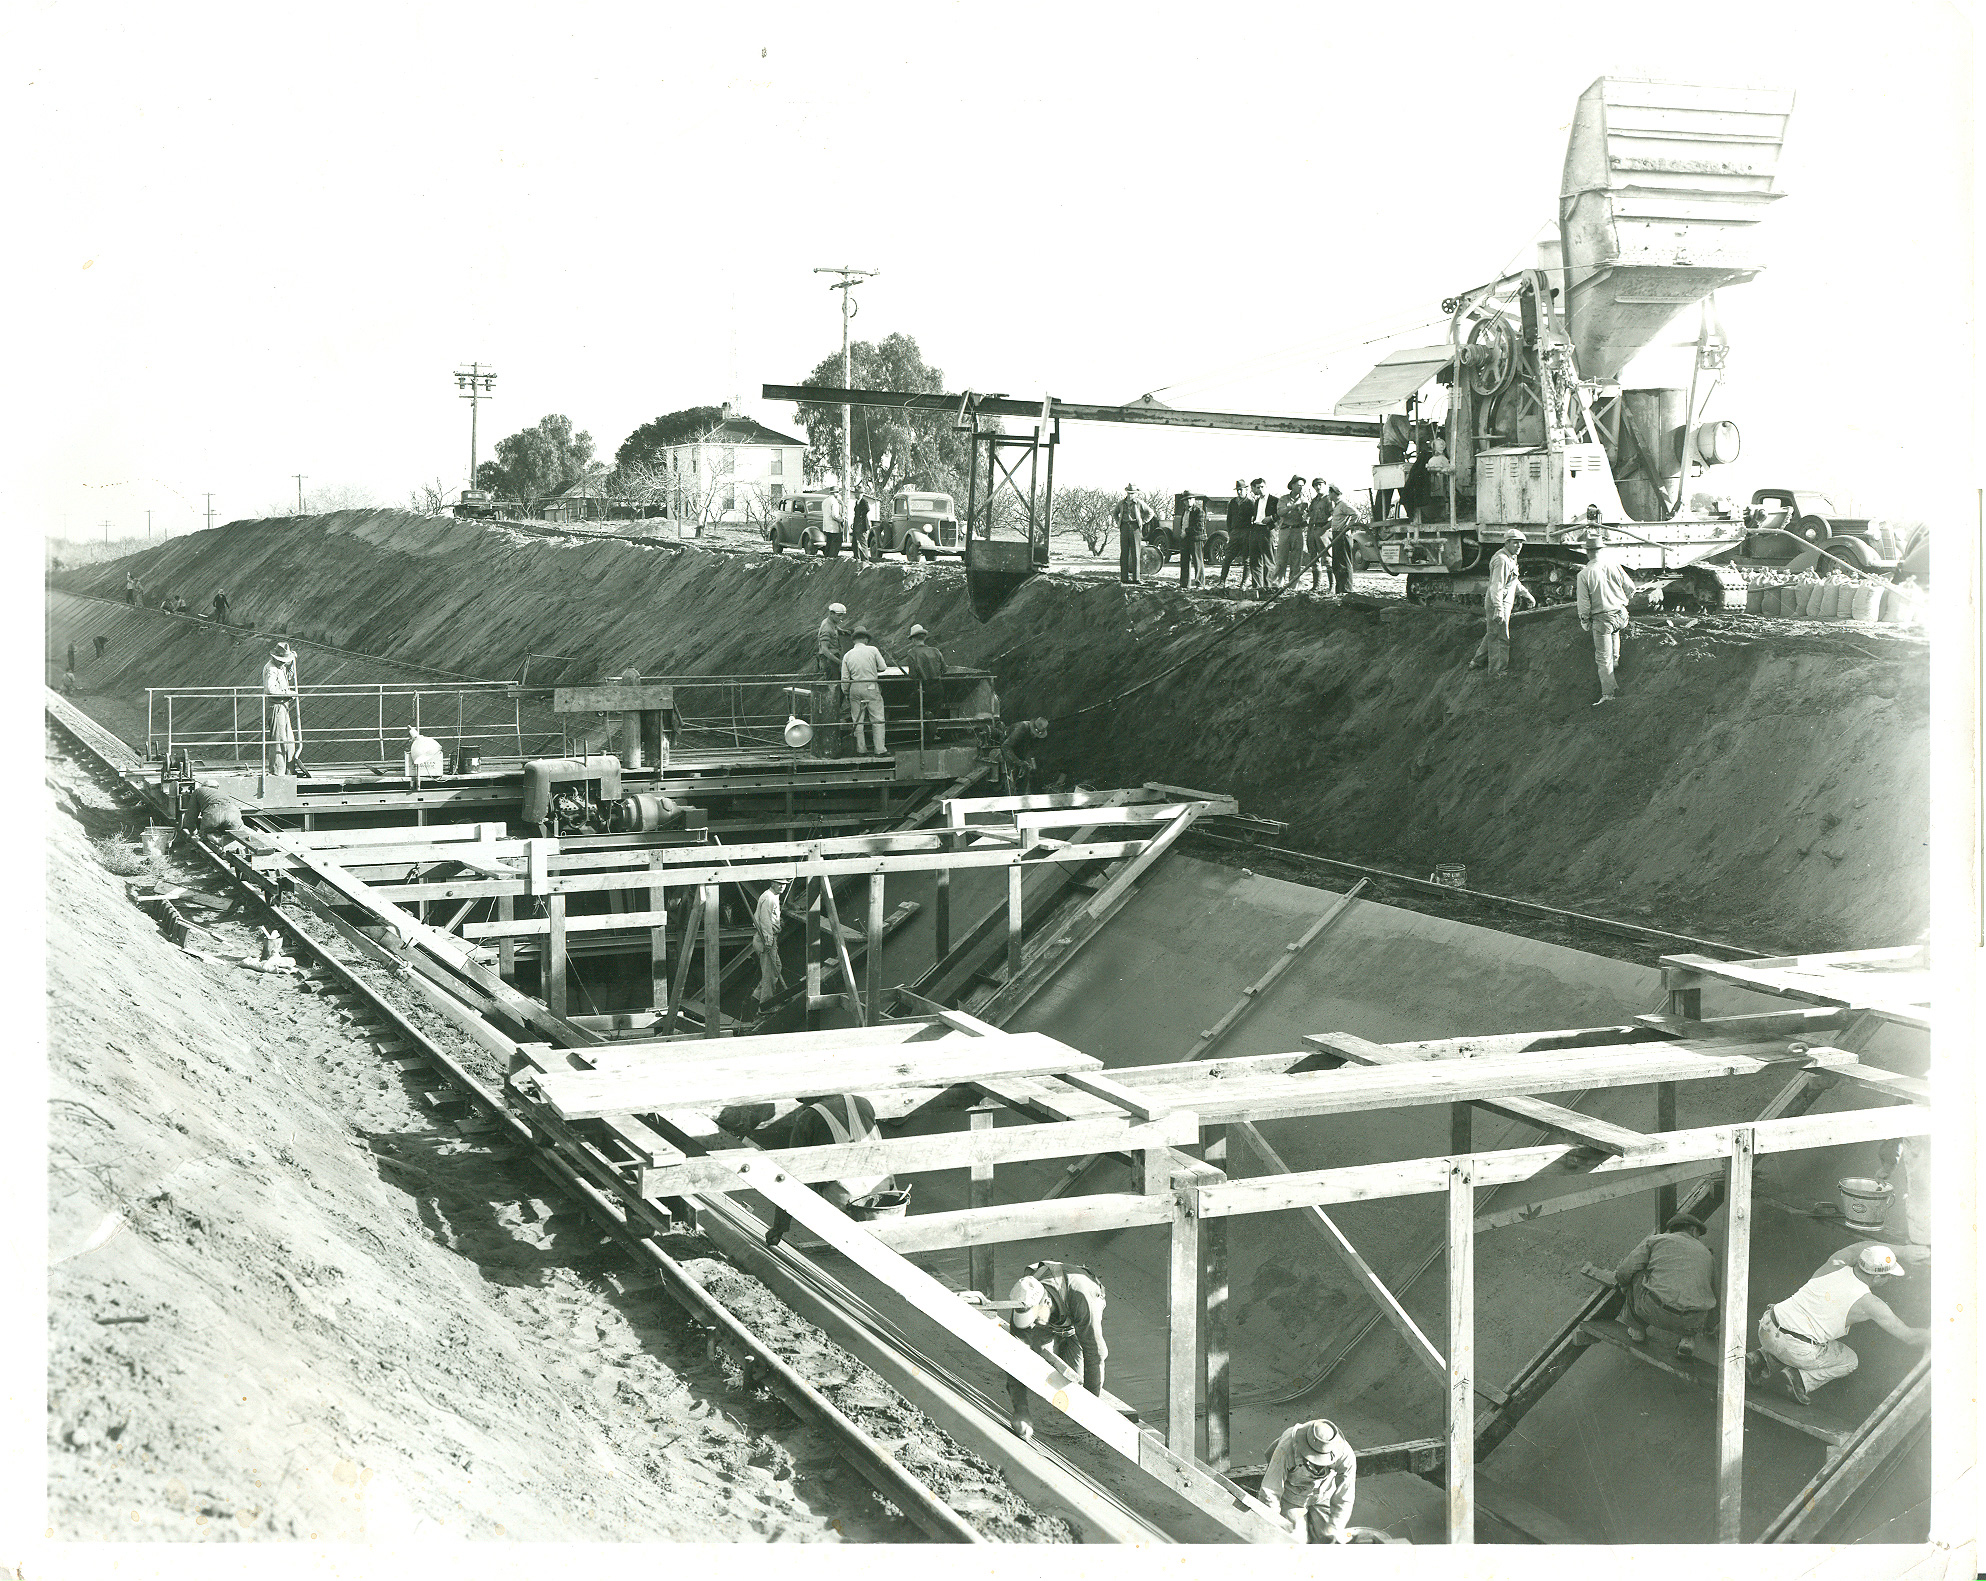 Early construction of the Contra Costa Canal